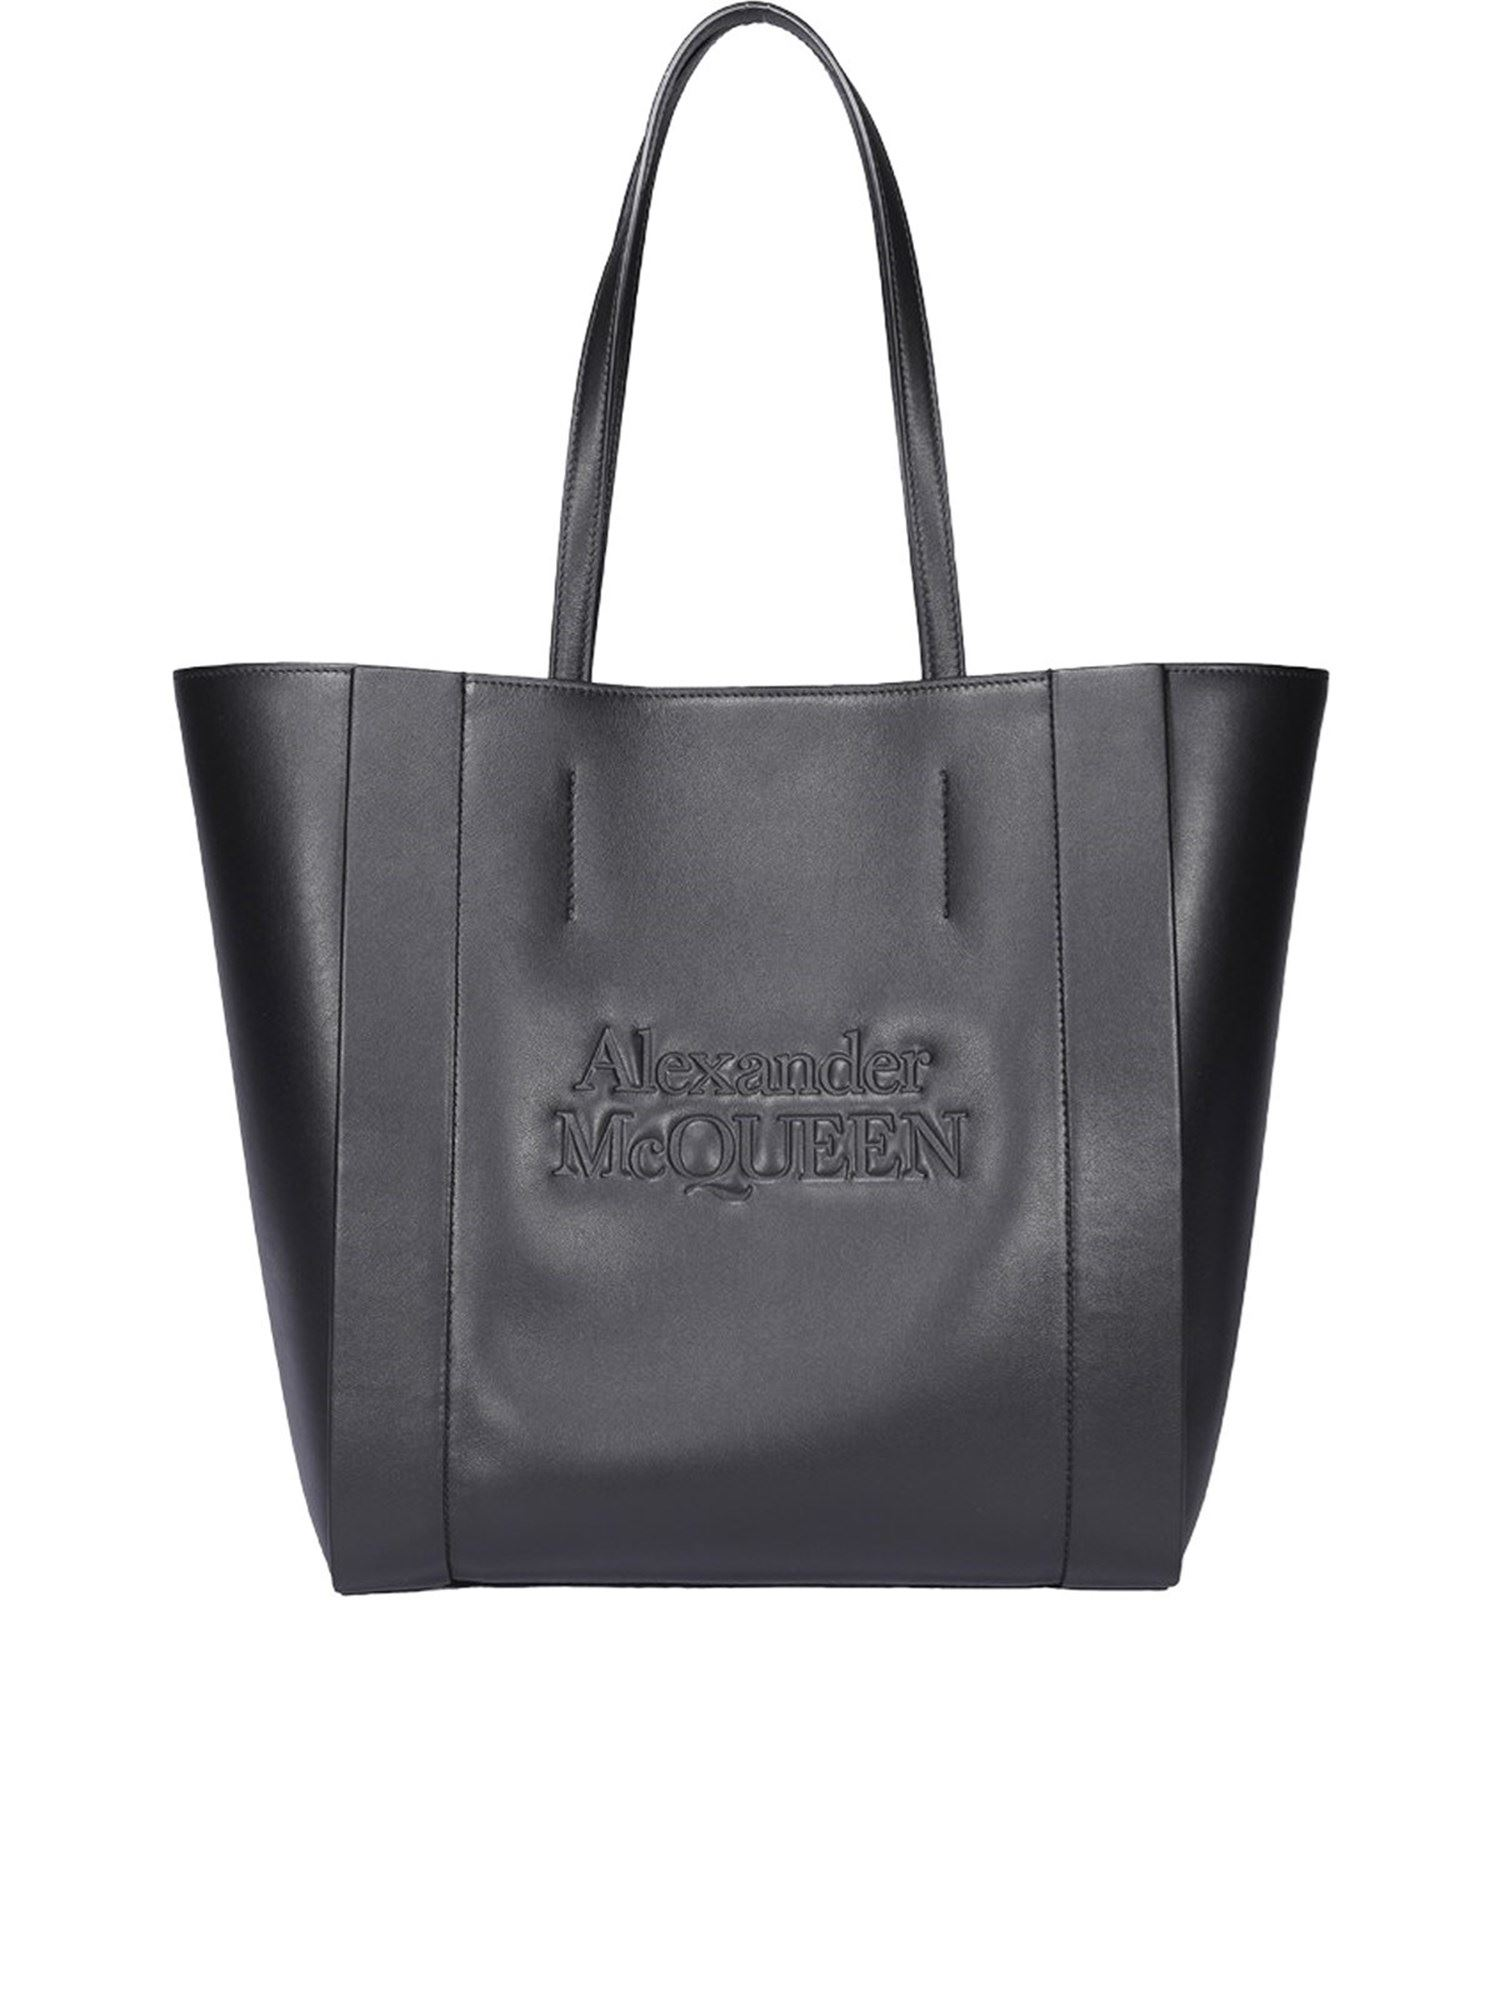 Alexander Mcqueen ALEXANDER MCQUEEN LEATHER TOTE IN BLACK